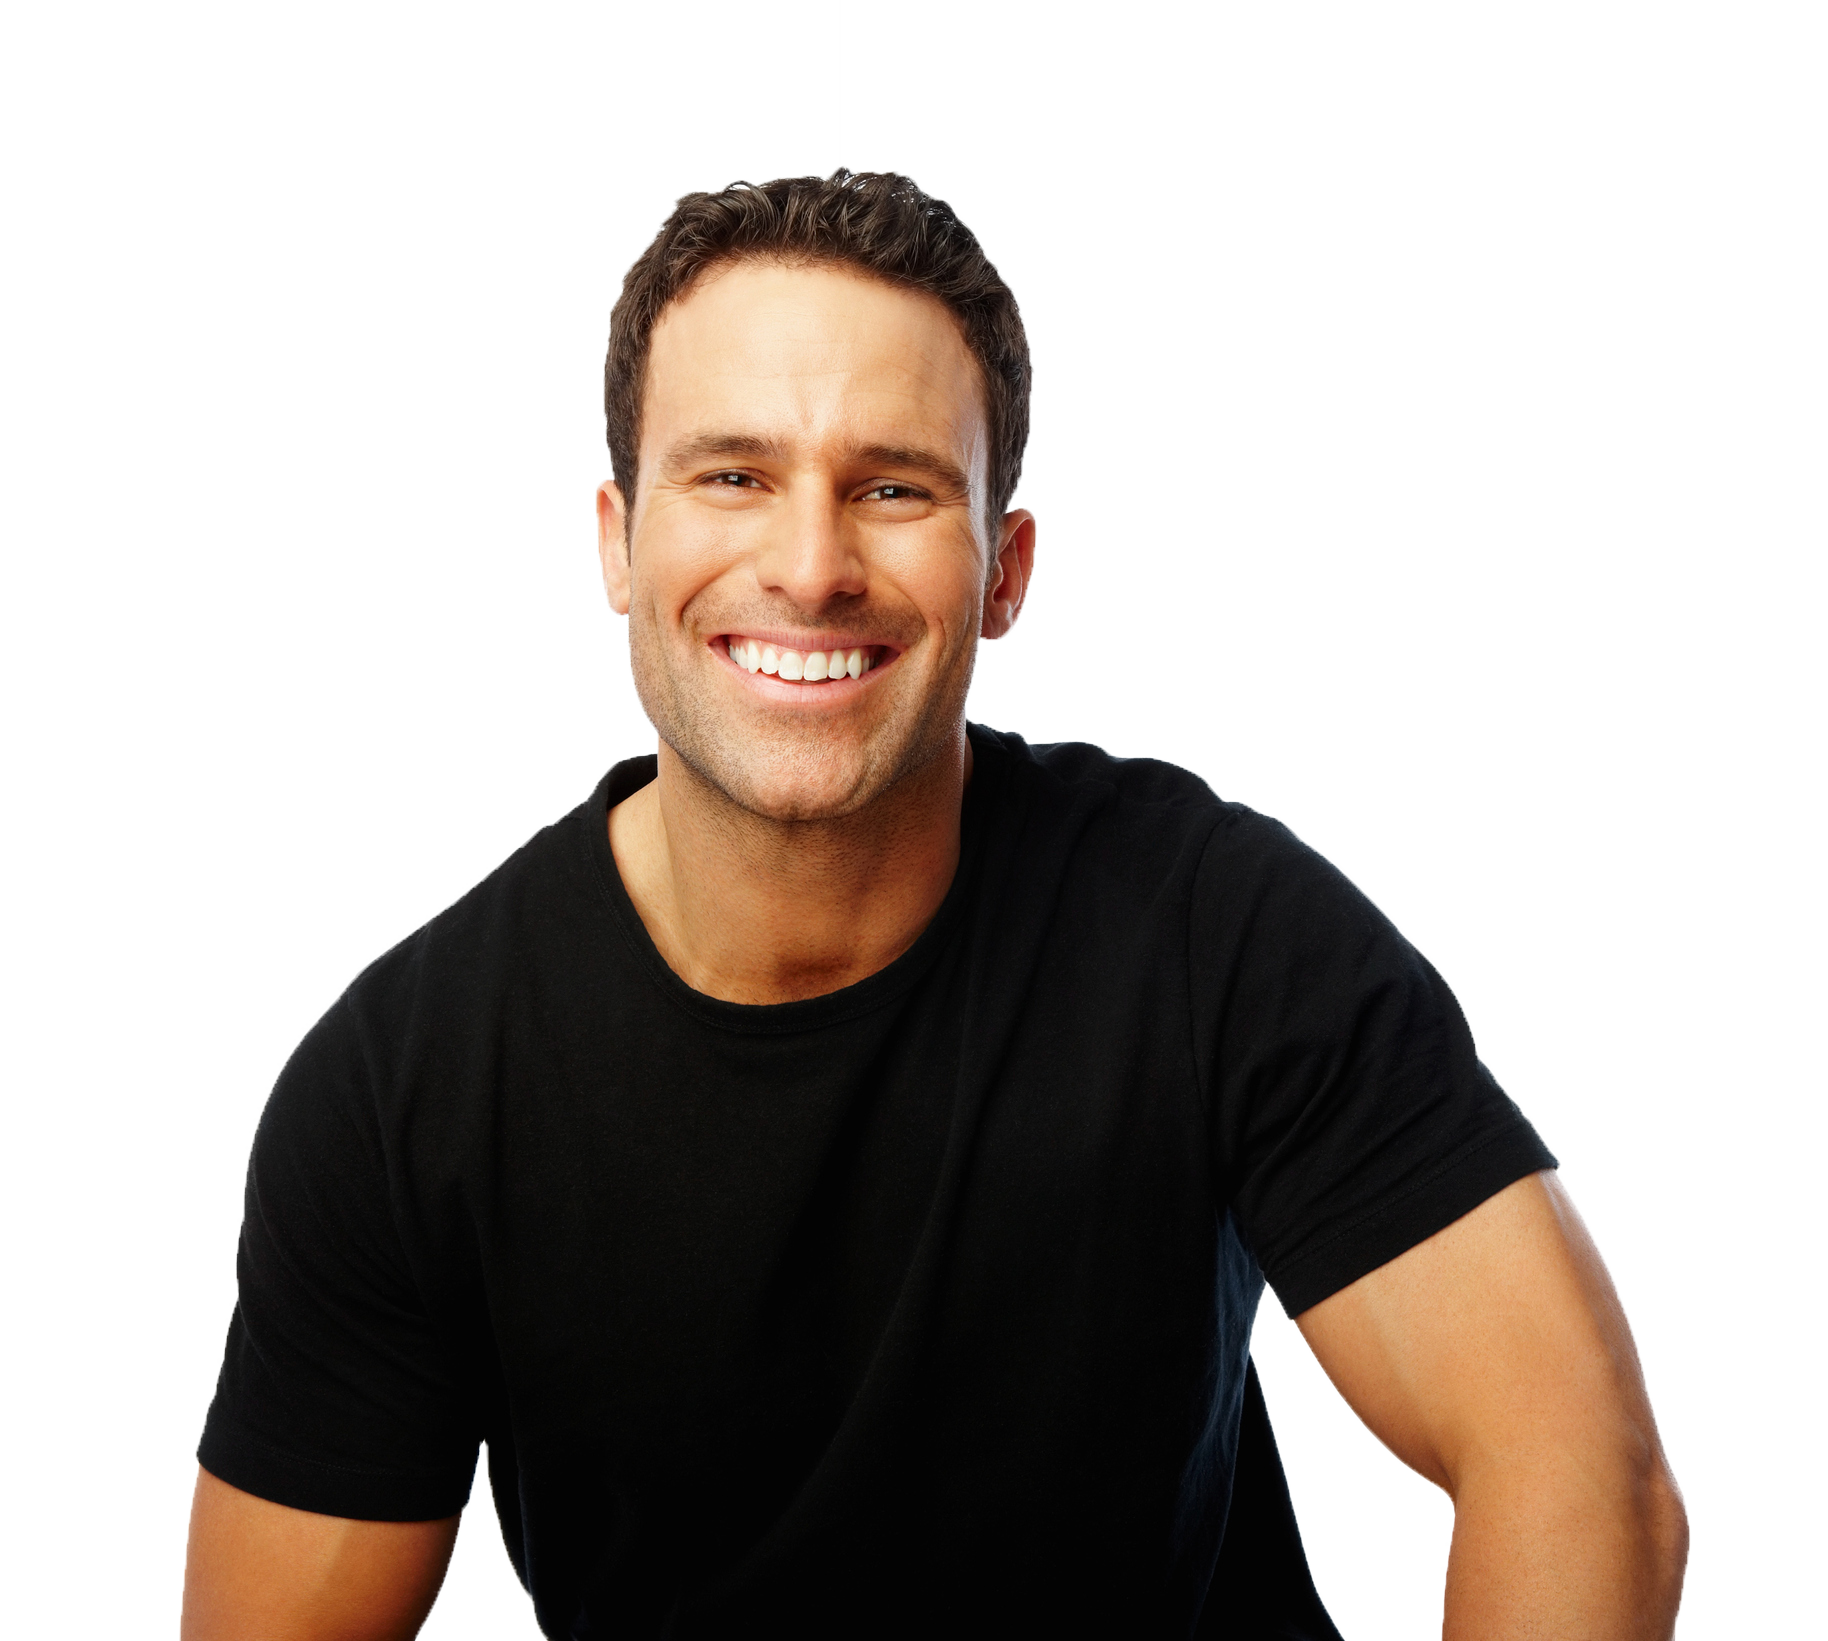 tulsa low testosterone clinic